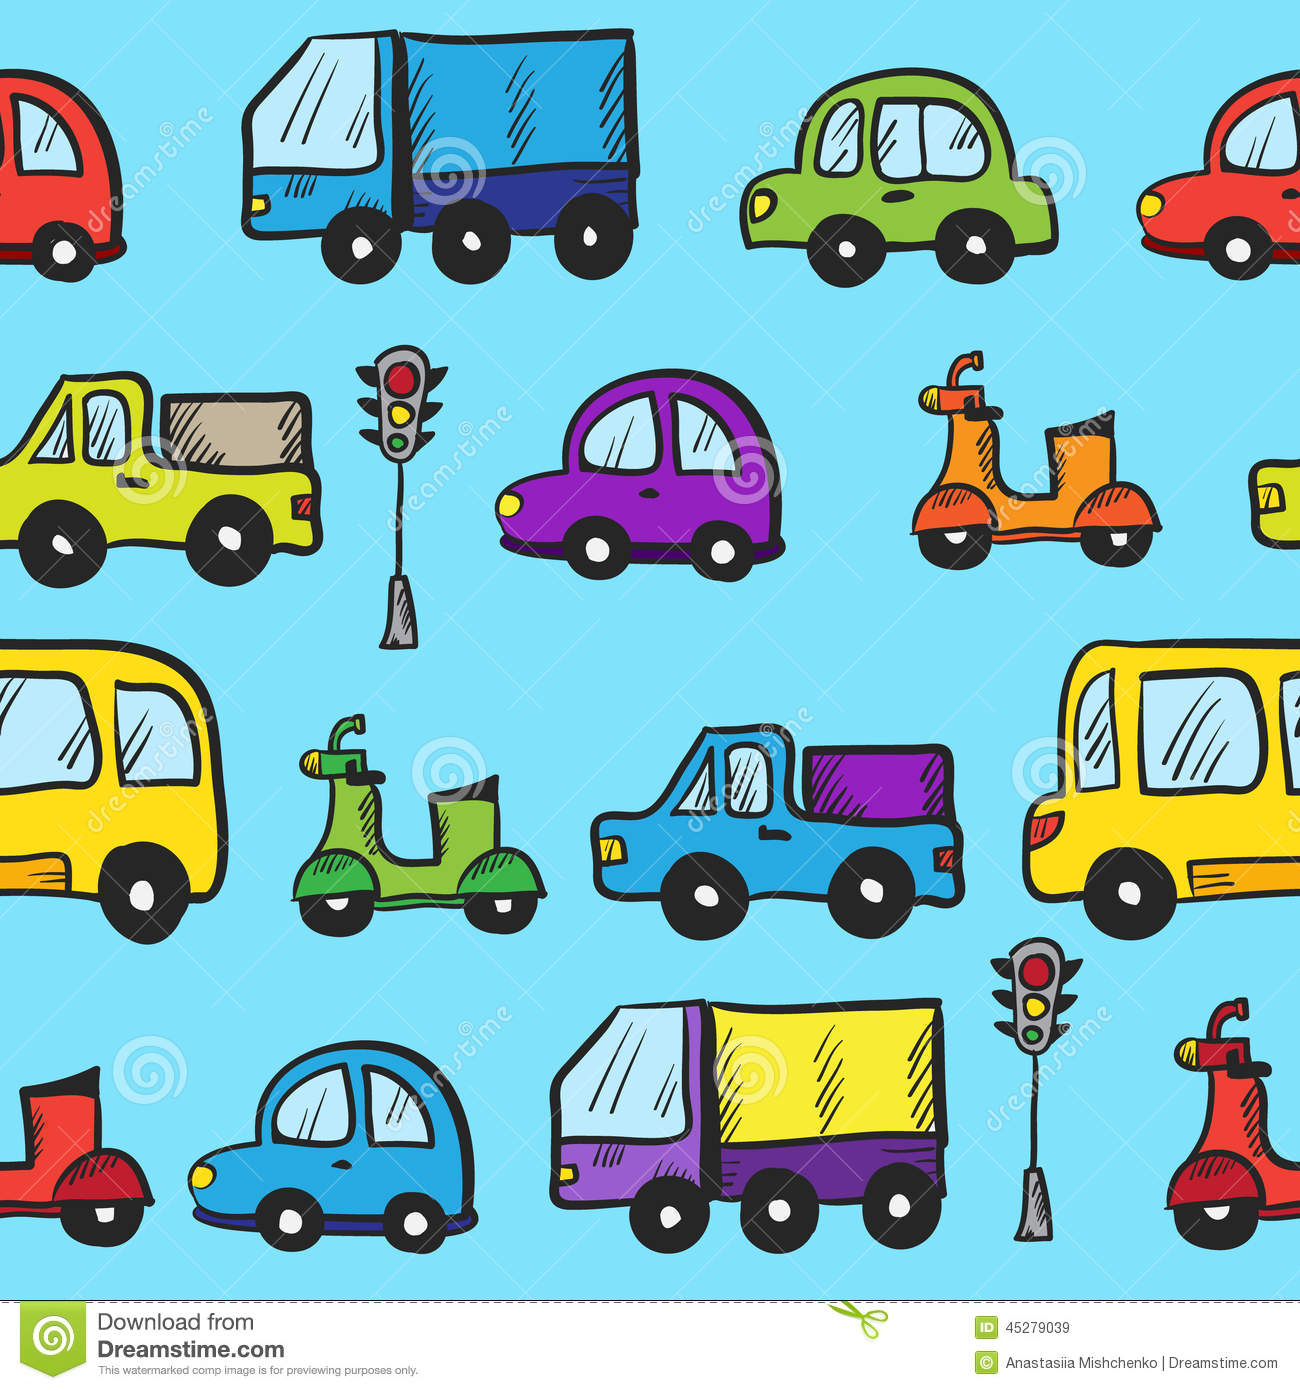 Cars Little Boy Wallpaper Vector Colorful Hand Drawn Doodle Cartoon Cars Stock